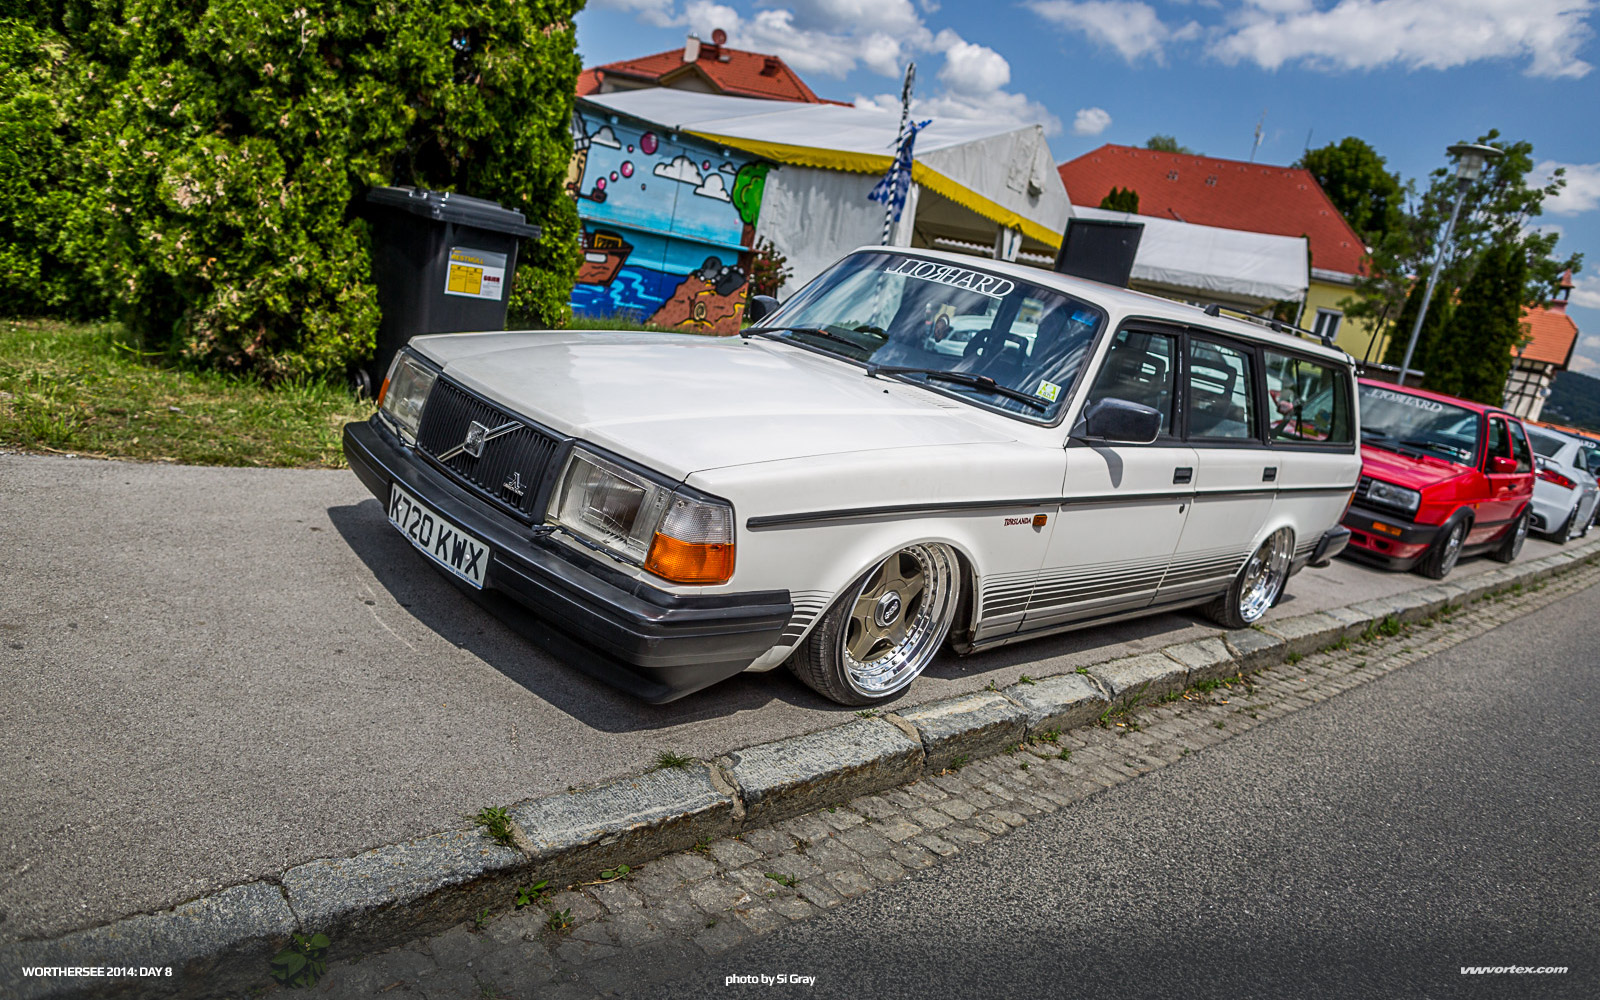 2014-Worthersee-Day-8-Si-Gray-1114